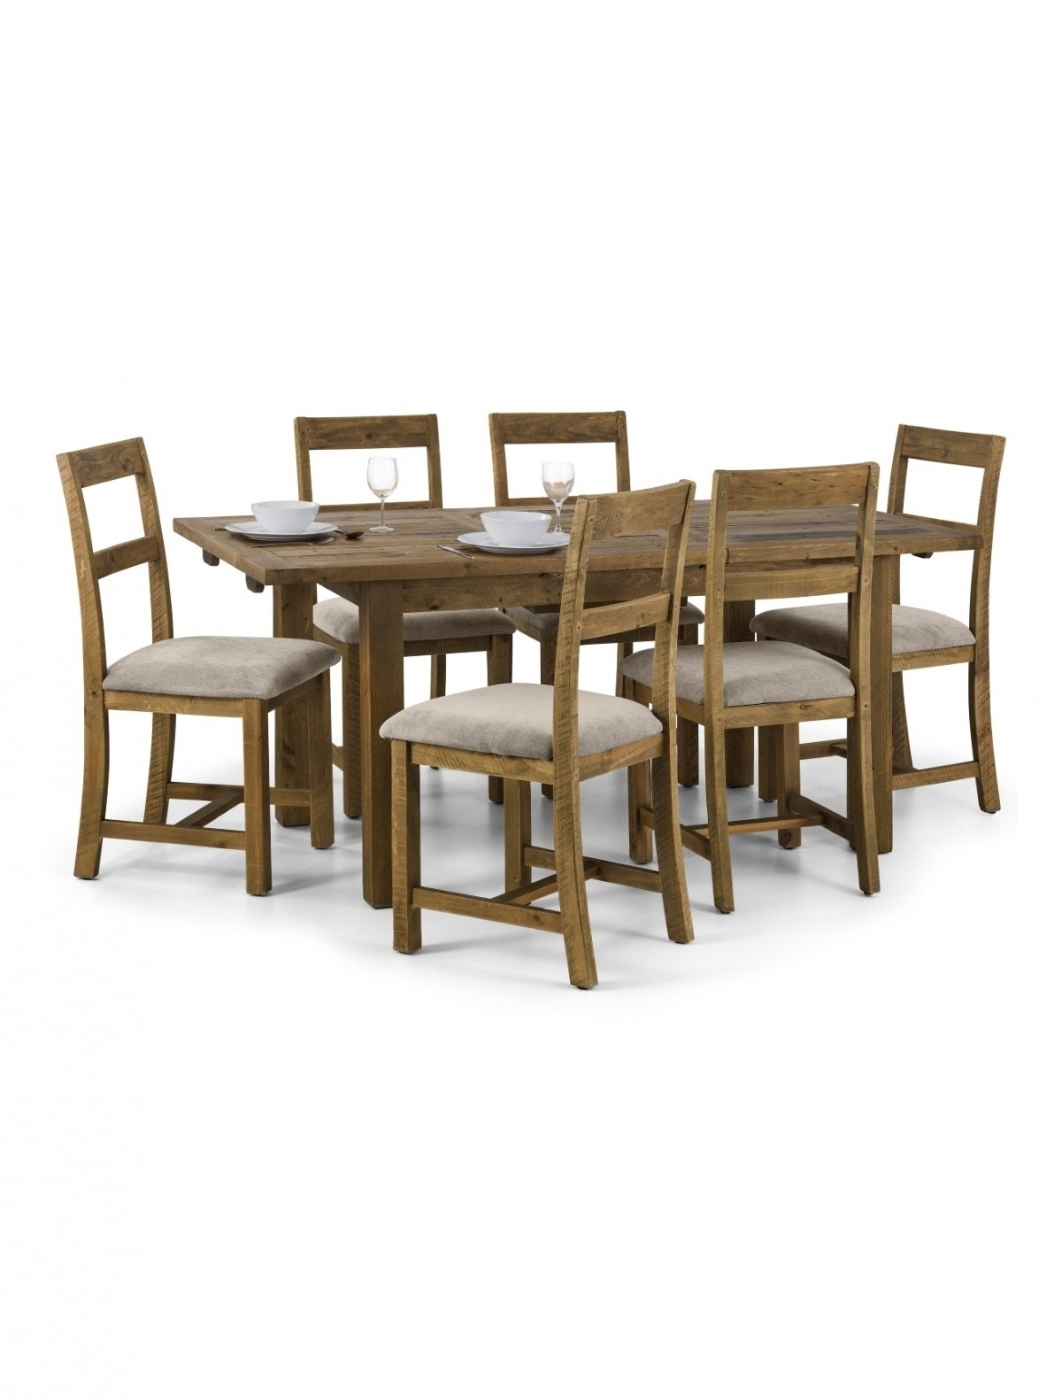 Extending Dining Sets In Preferred Aspen Extending Dining Table, 6 Dining Chairs In Solid Pine Asp (View 17 of 25)